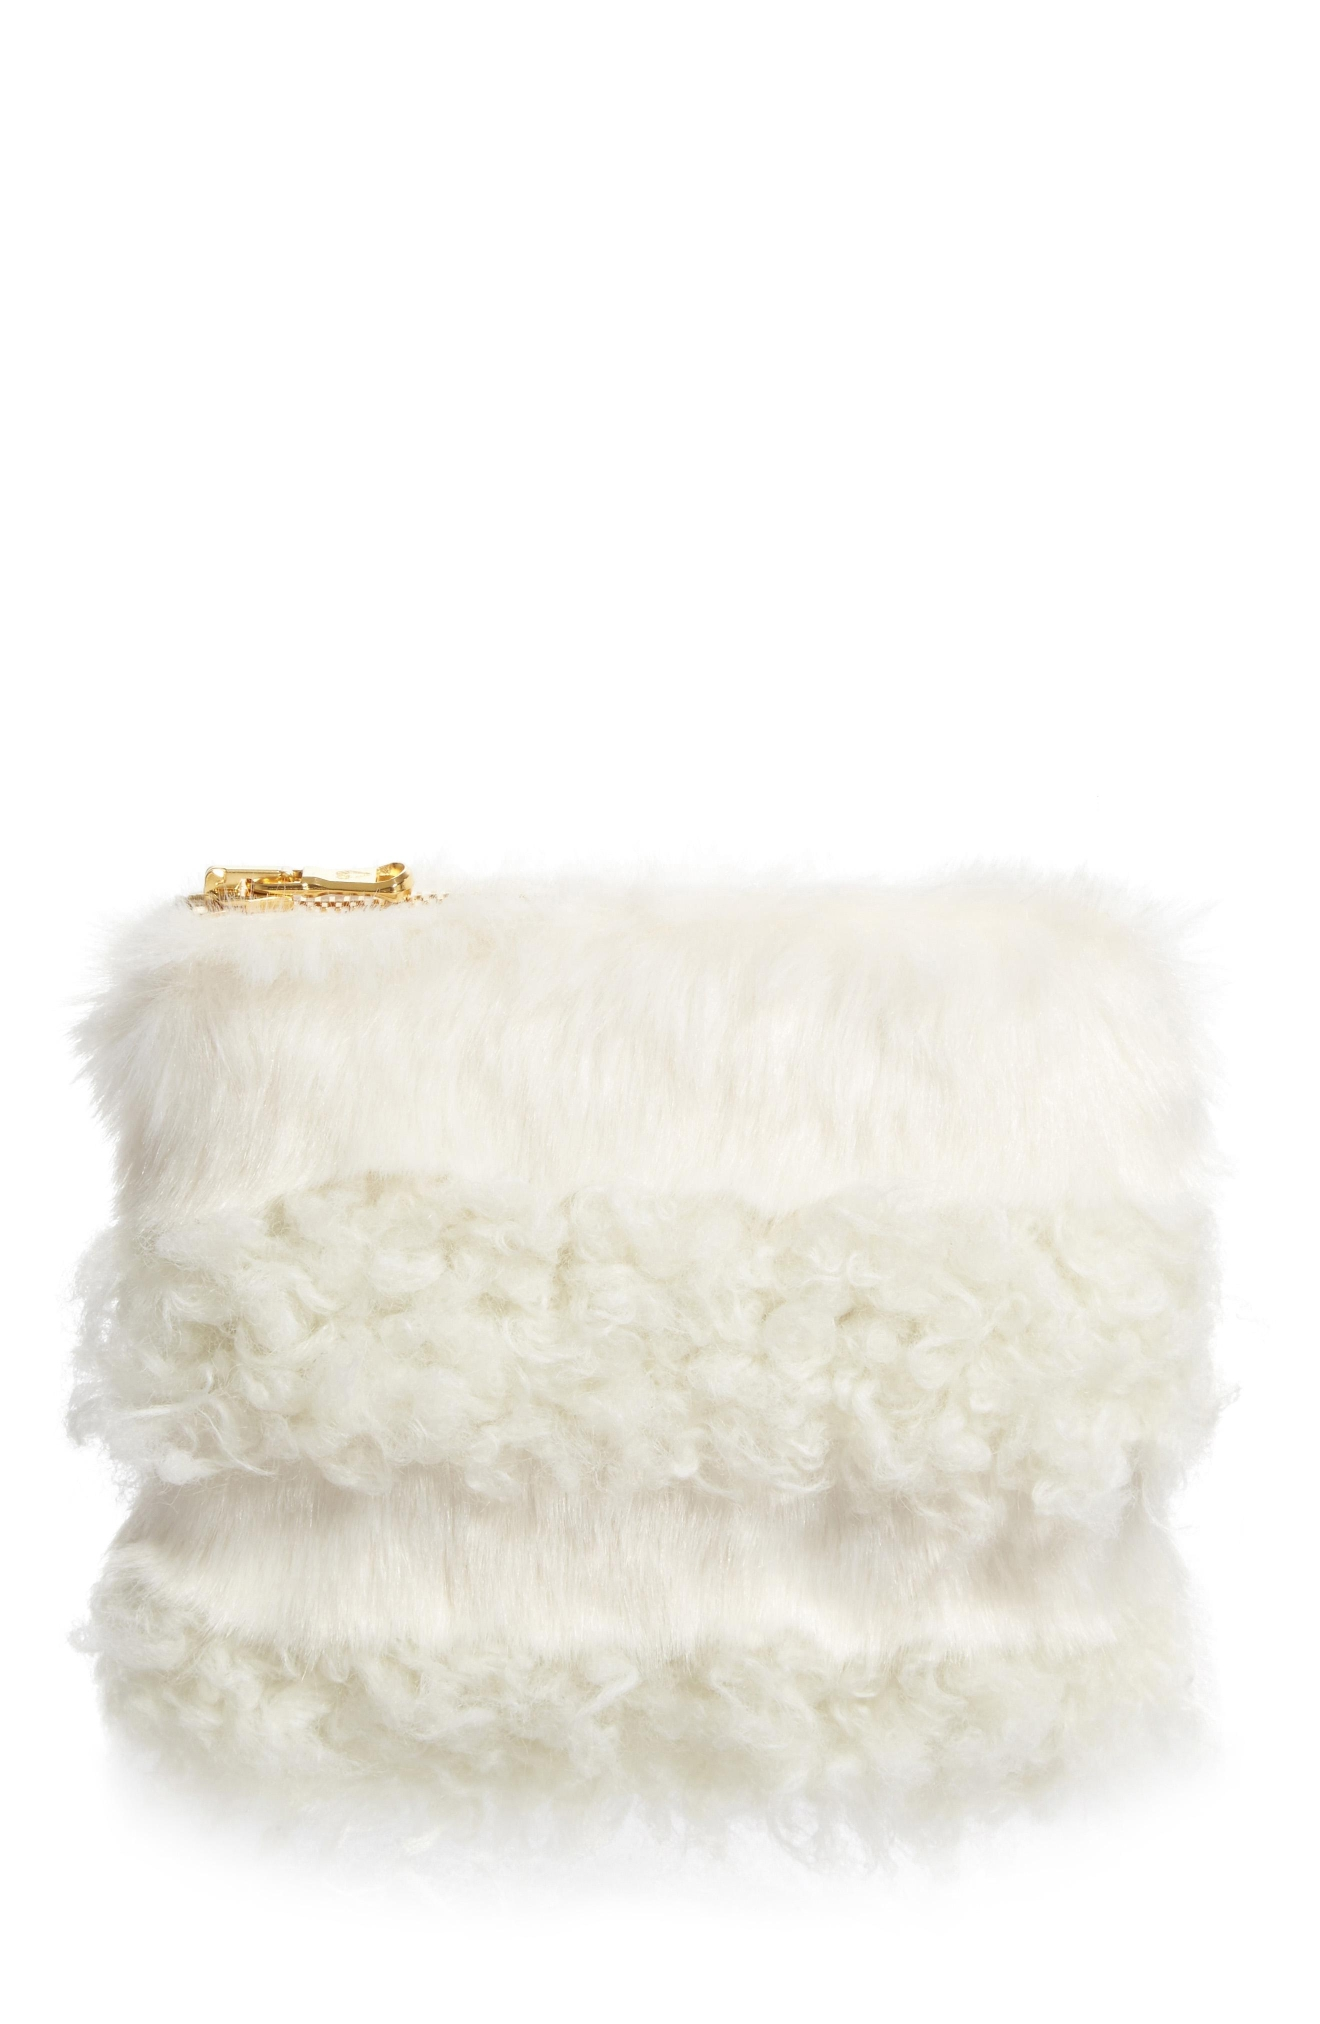 Shrimps Faux Shearling Clutch - $250. Get it at nordstrom.com/space. (Image: Nordstrom)